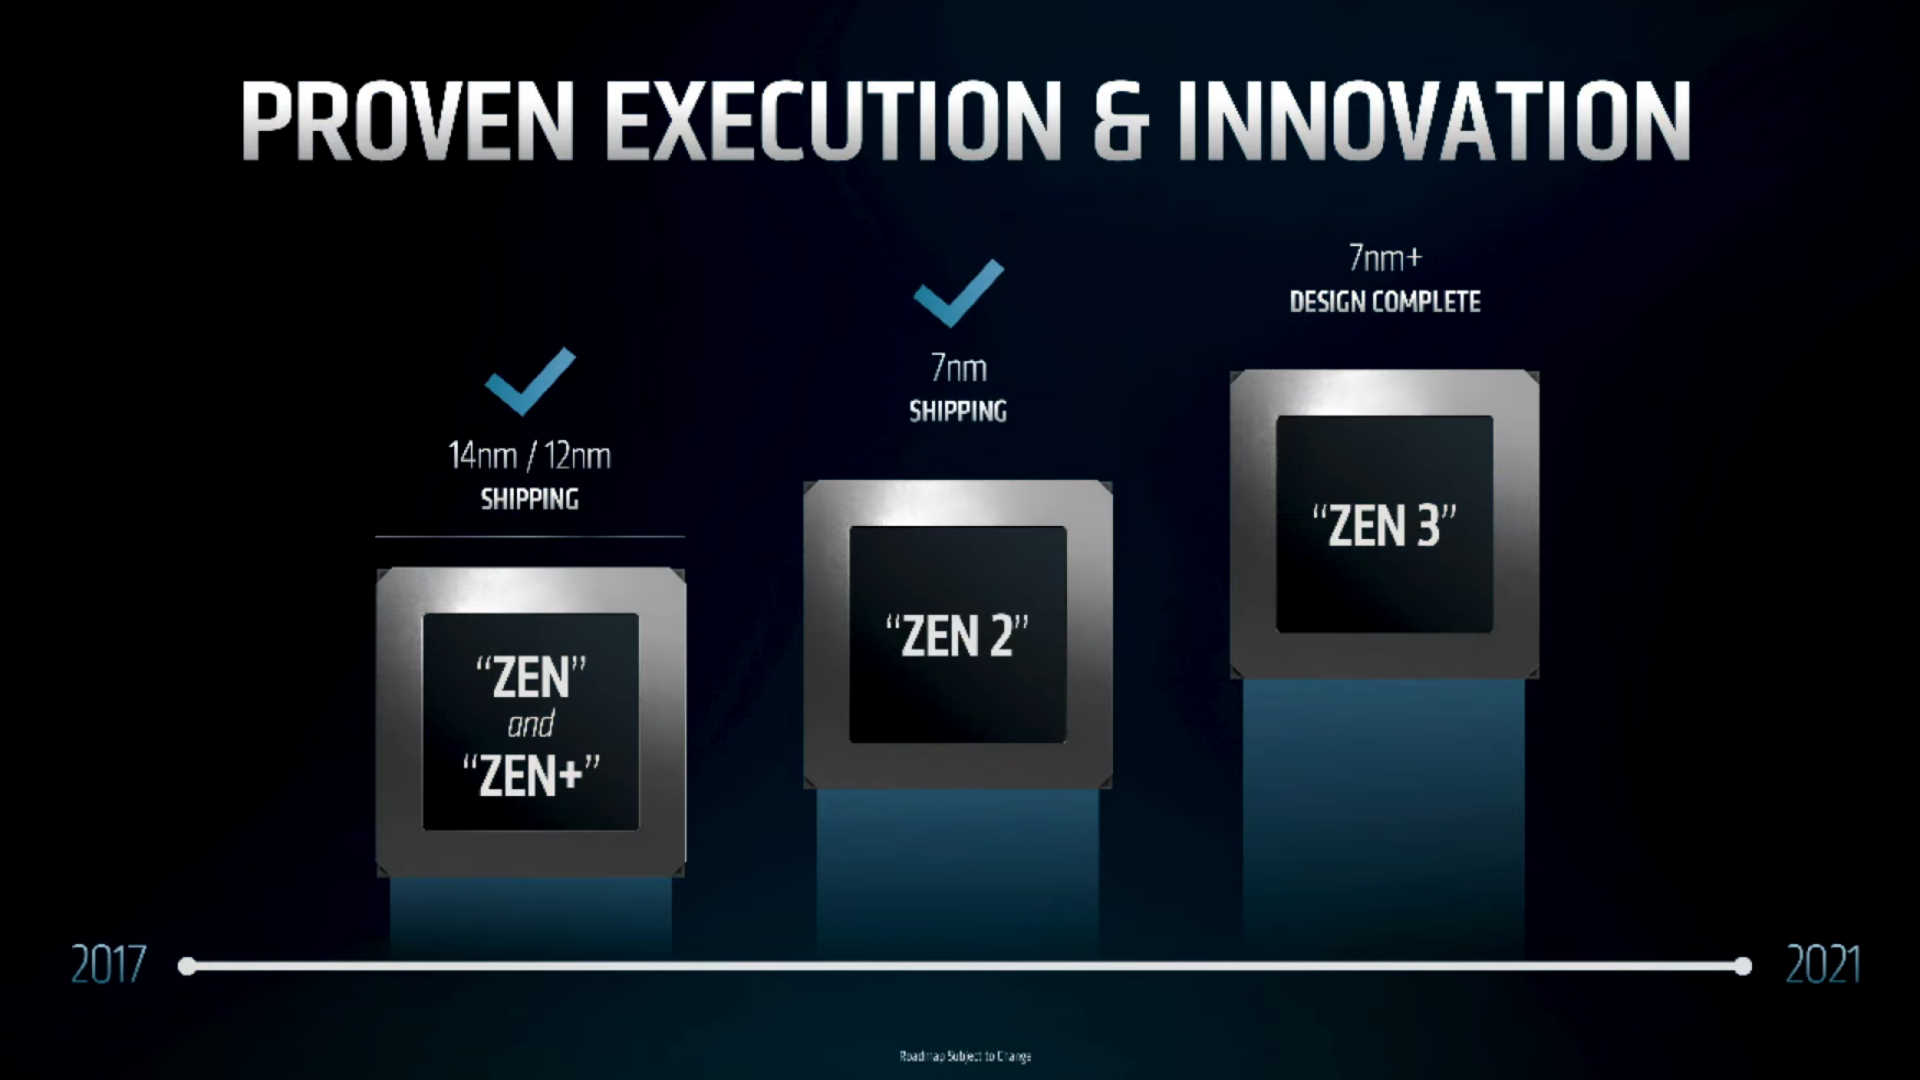 Amd Says Zen 5 Is In The Design Phase Hinting At An Intel Tick Tock Like Model Pcgamesn